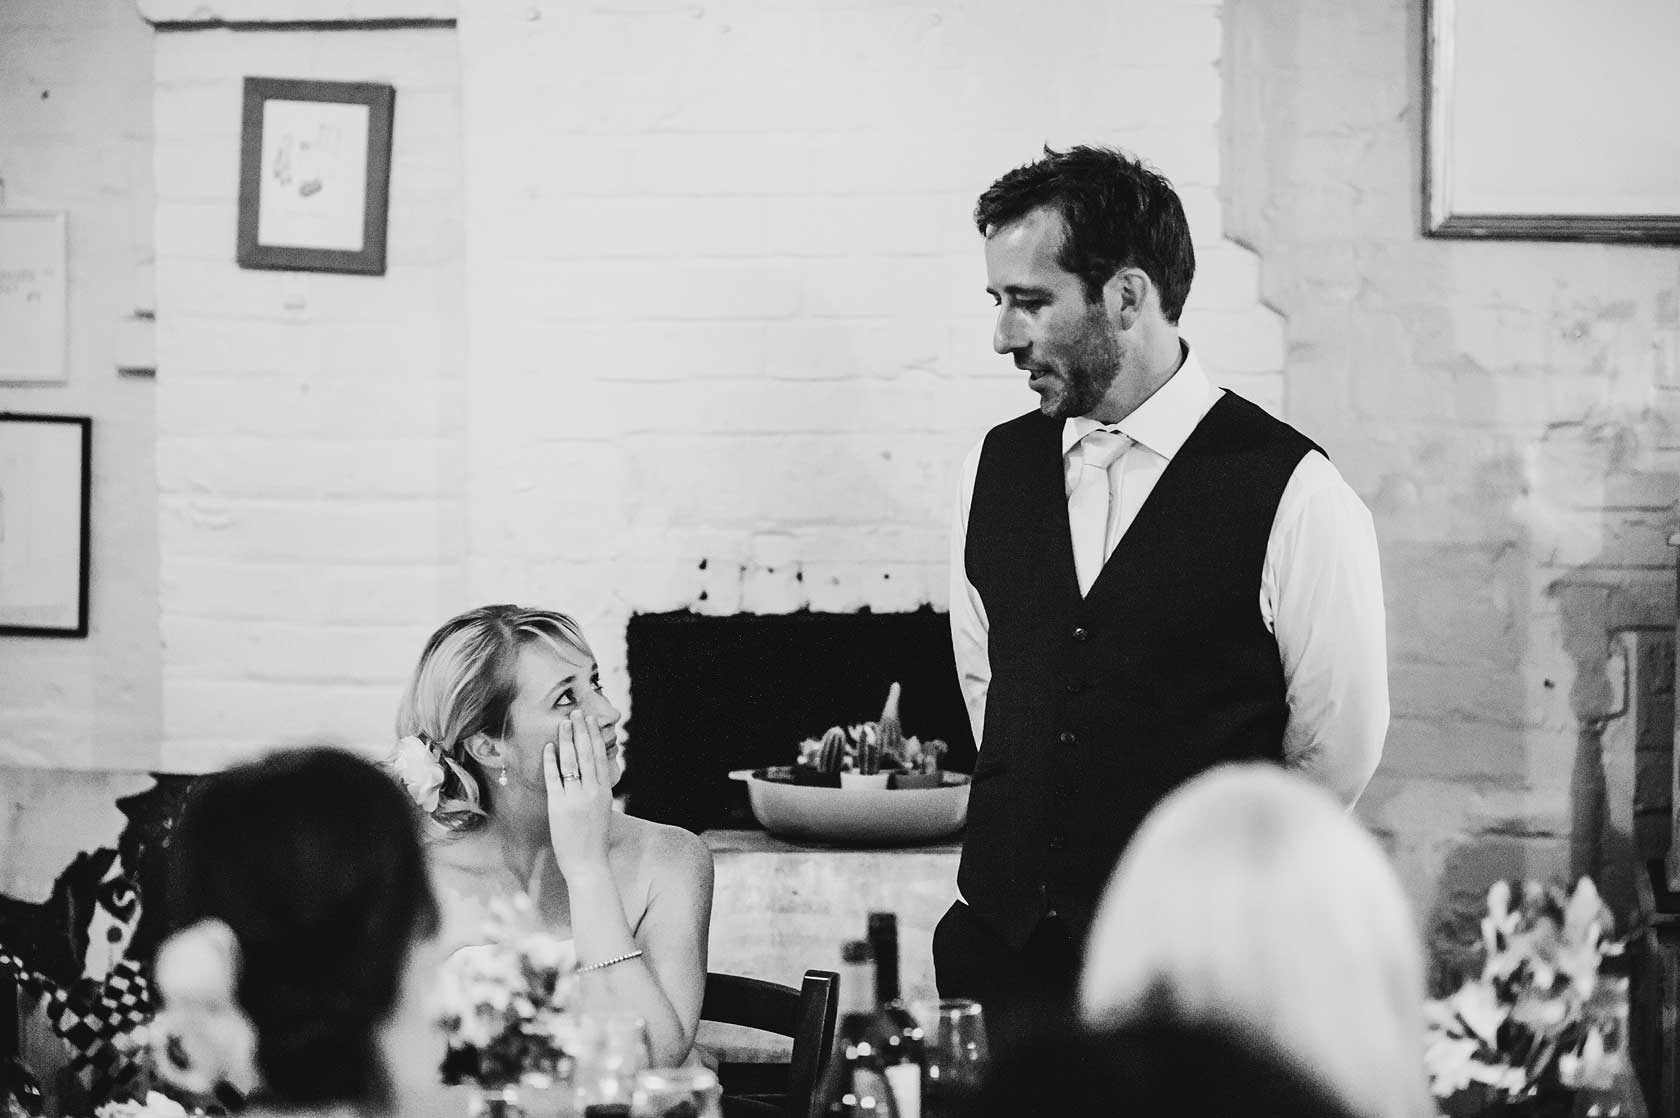 Reportage Wedding Photography at Hackney City Farm